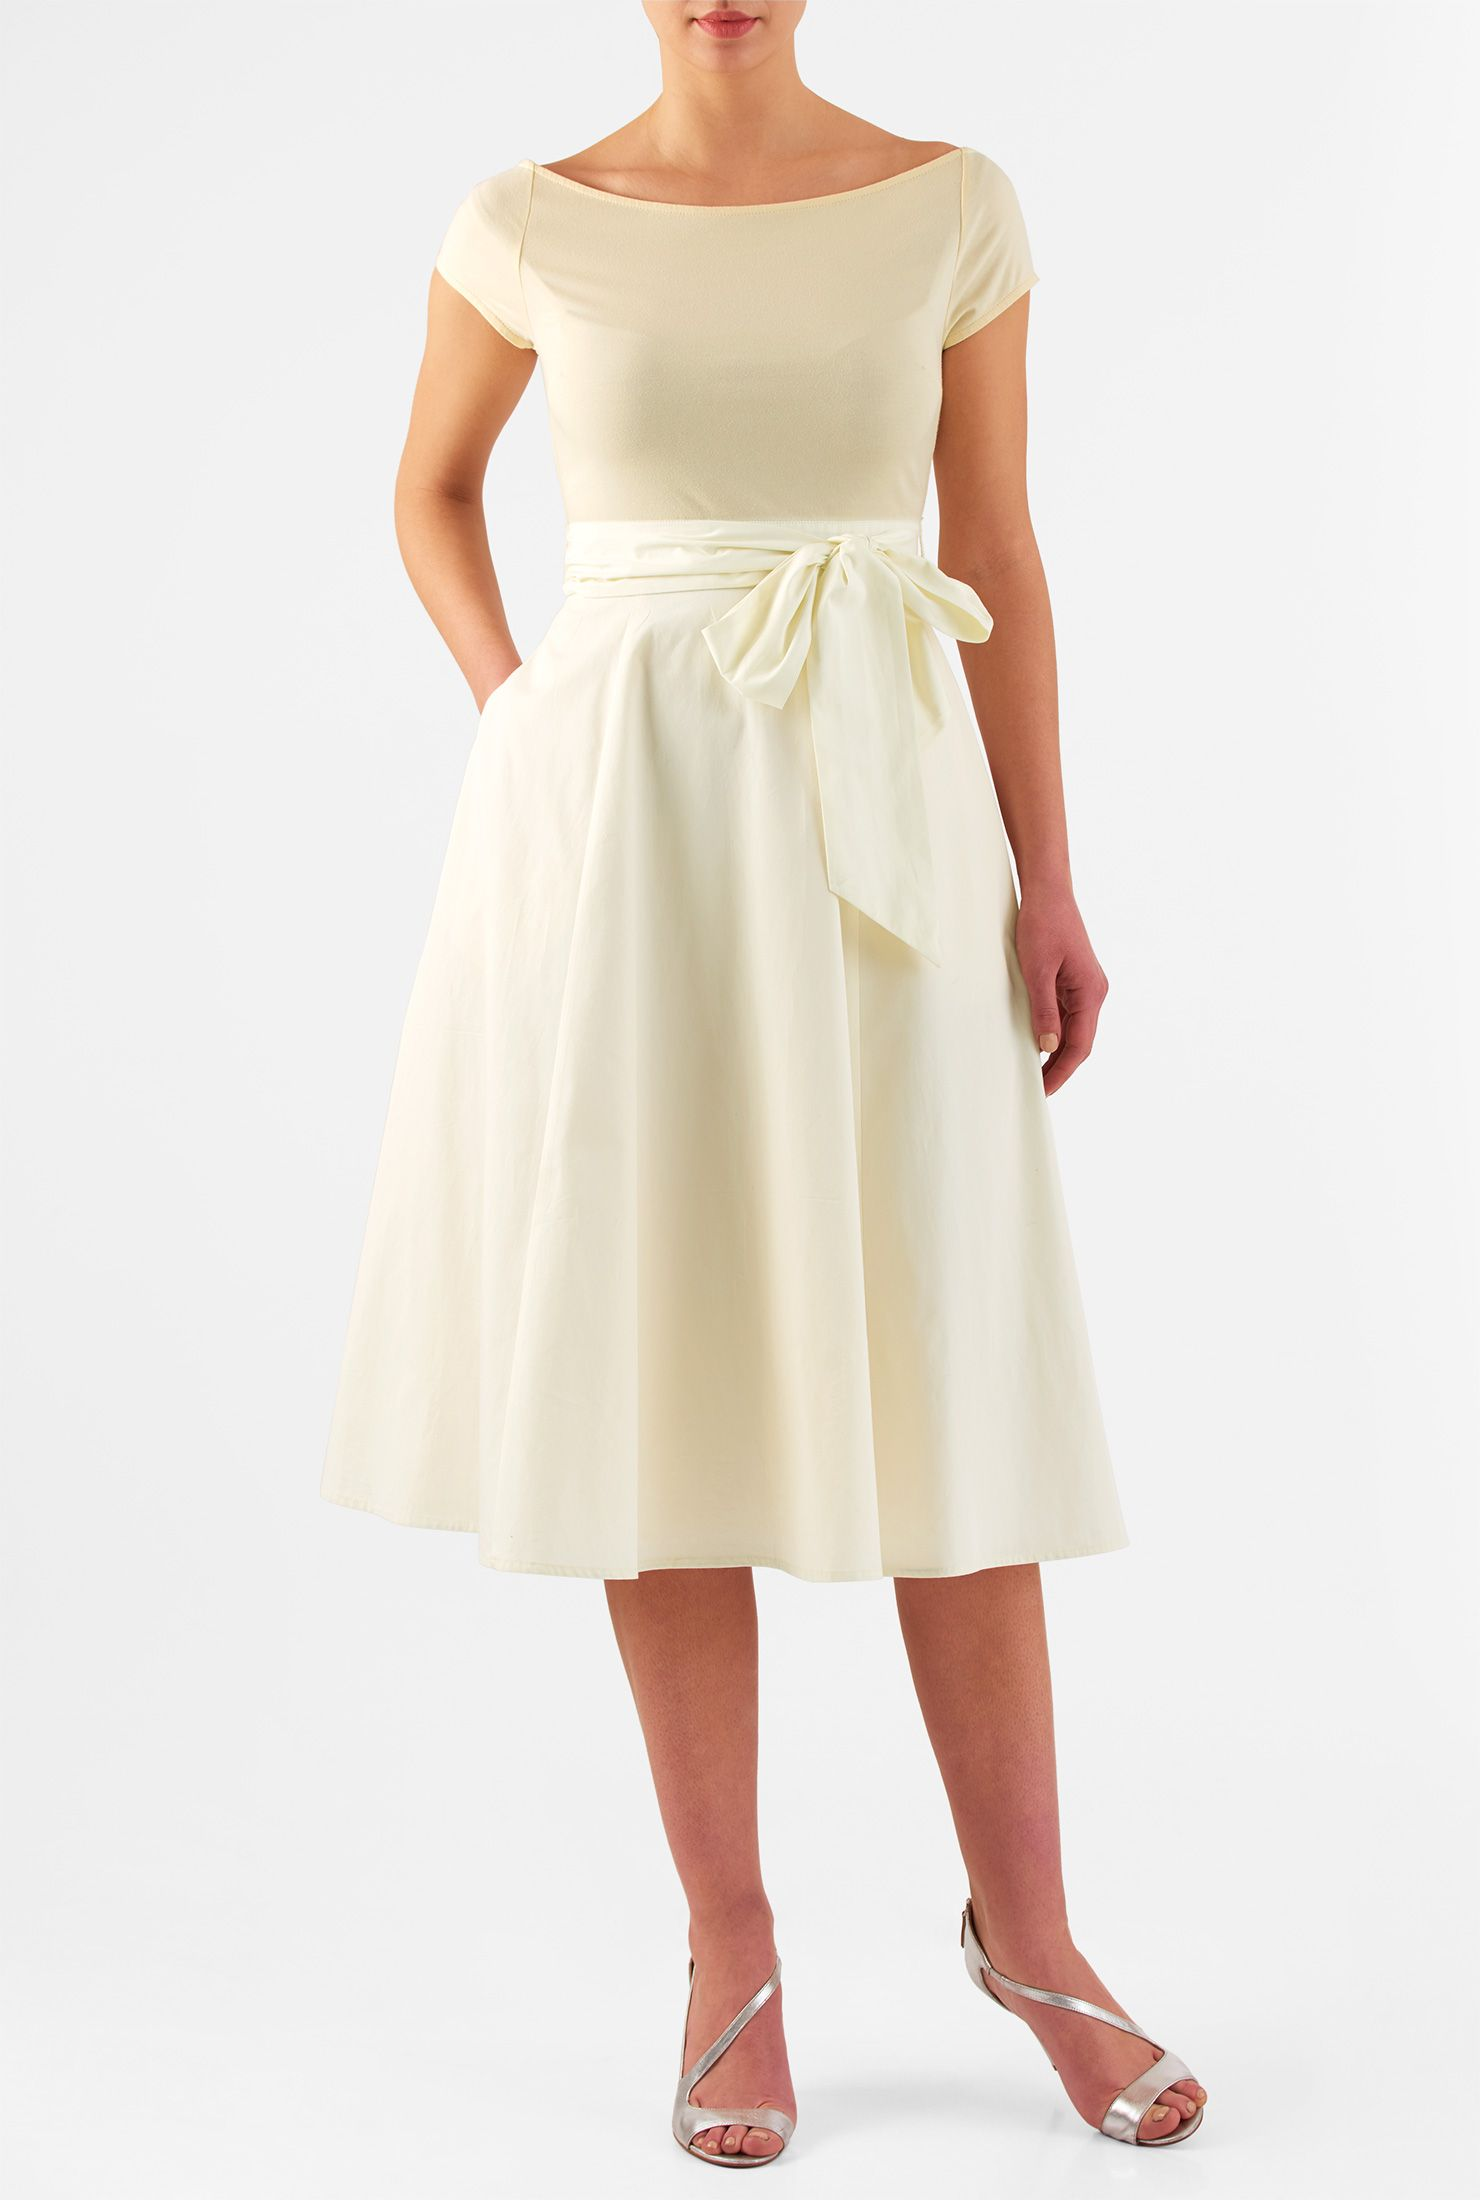 Marlow dress vintage silhouette boat neck and midi dresses